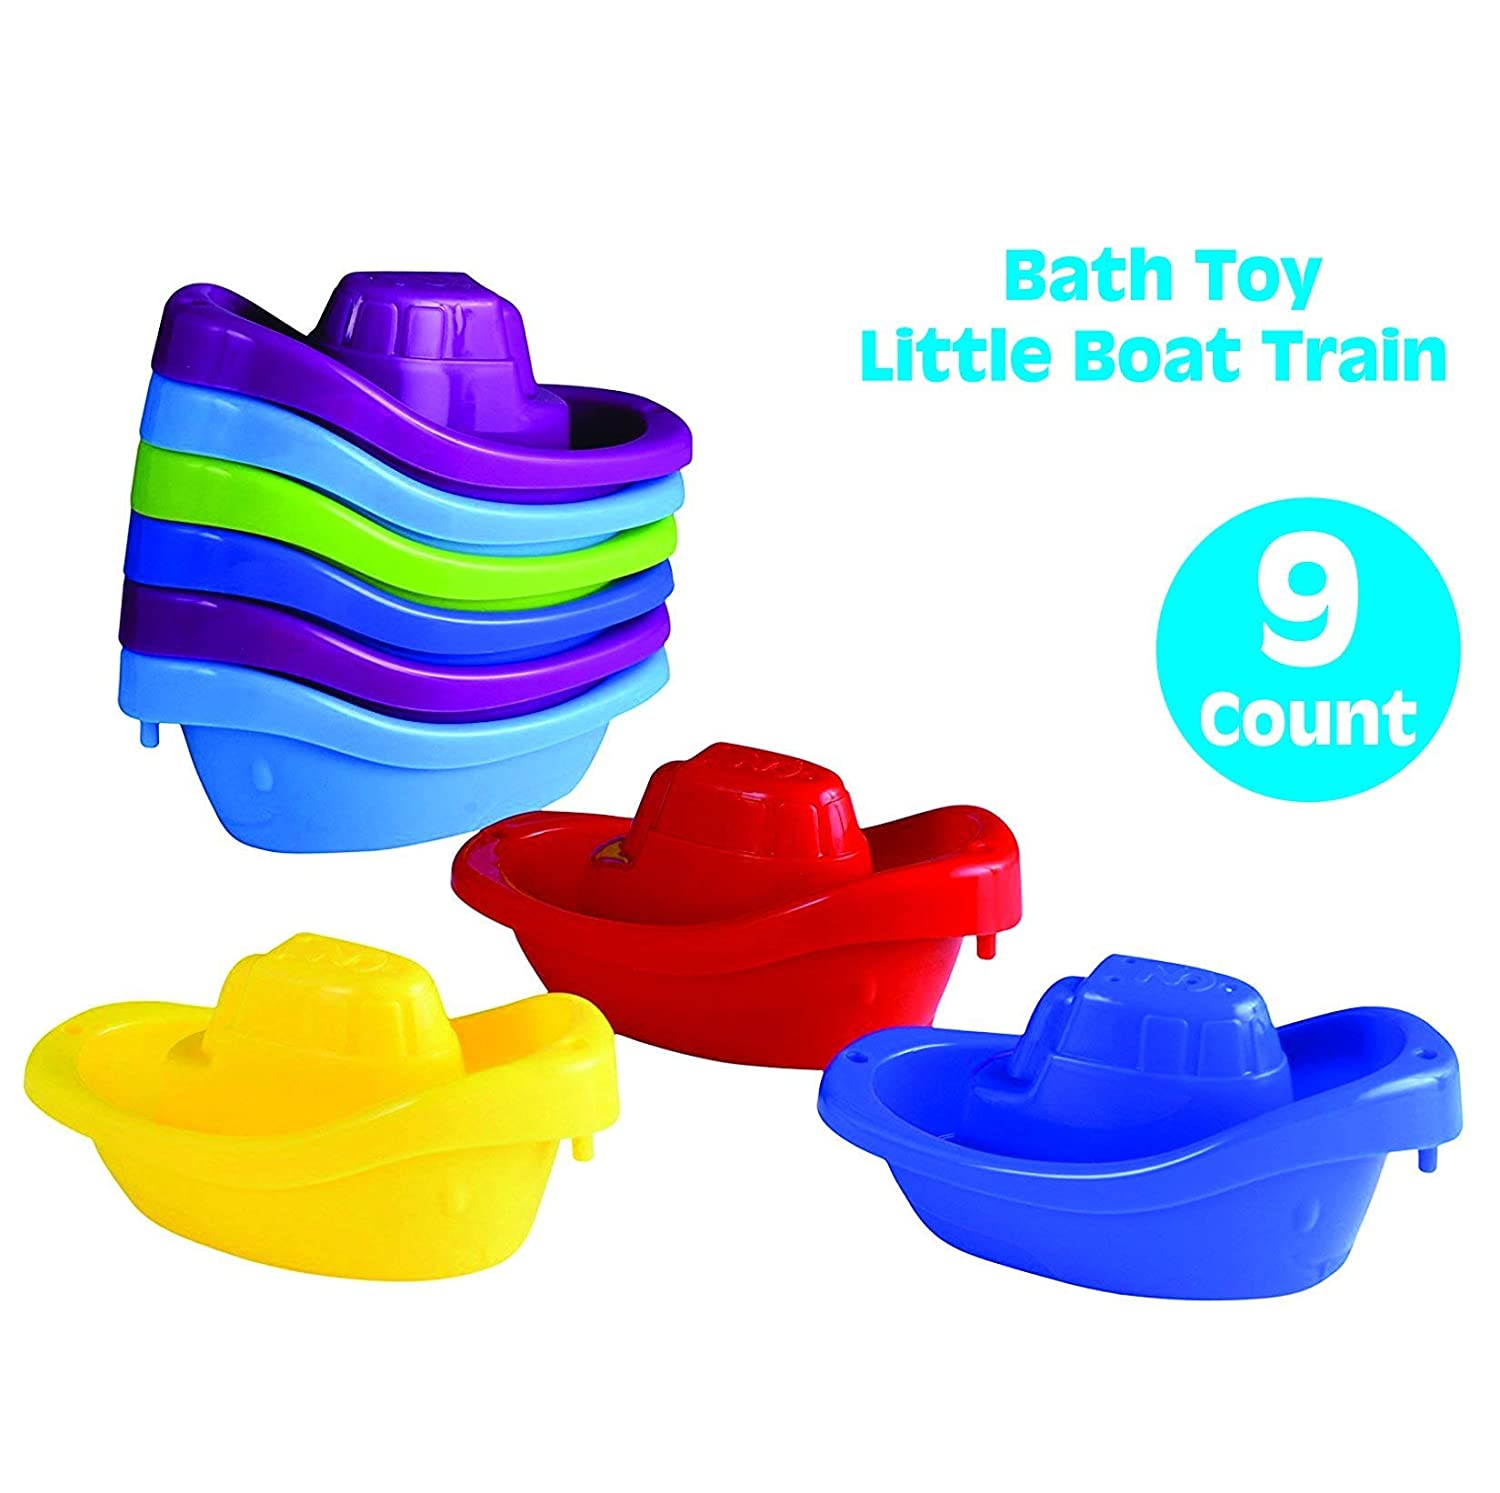 playkidz Bathおもちゃ小さなボート列車9パックスタッカブルプラスチックKids Tugboats for Bathtub & More in 6色Ages 3 and Up   B07CZ6FL6D